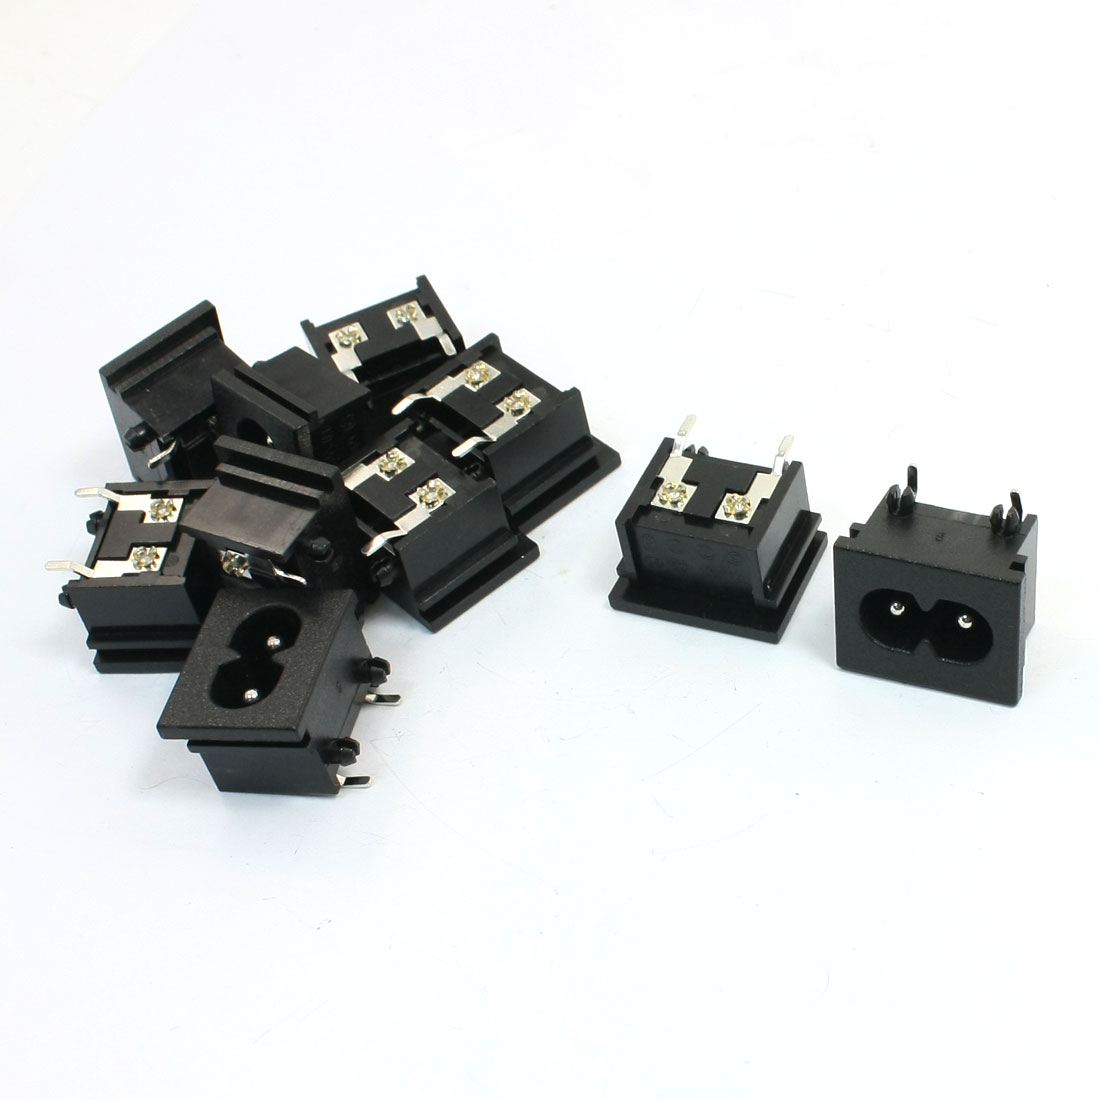 10Pcs Black Plastic PCB Board IEC320 Inlet C8 Power Adapter AC 250V 2.5A